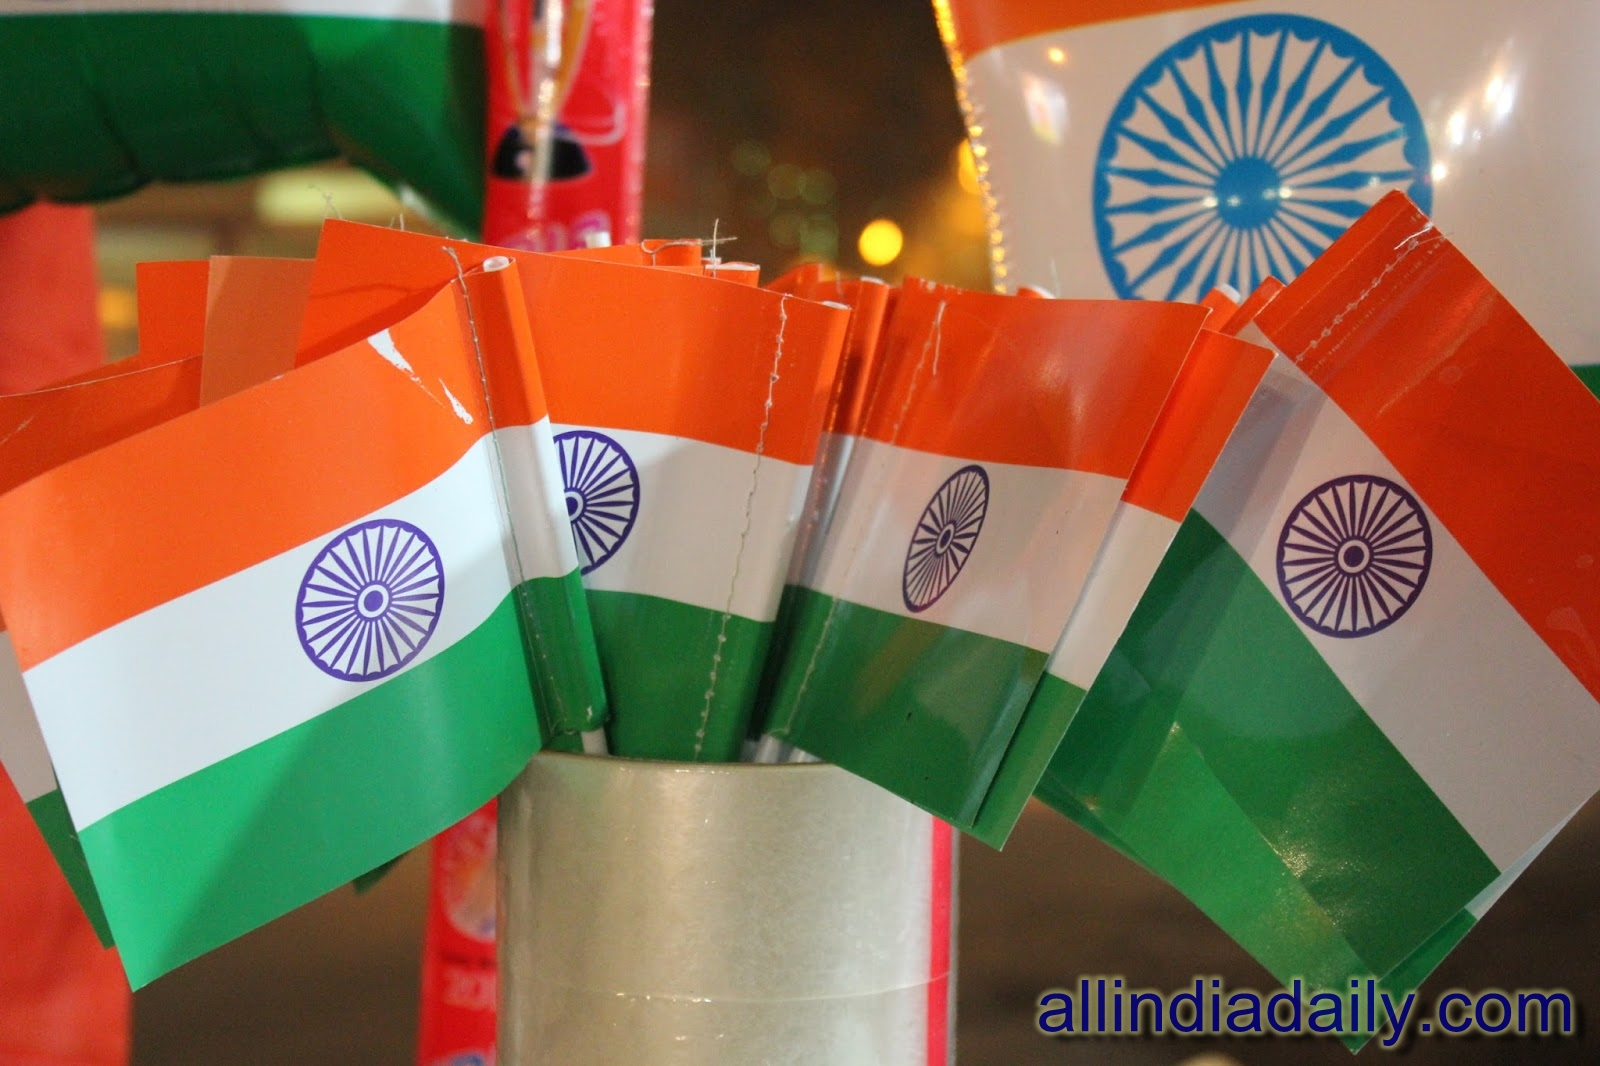 Happy Independence Day Wallpapers | 15th August 2013 Wallpapers Free Download